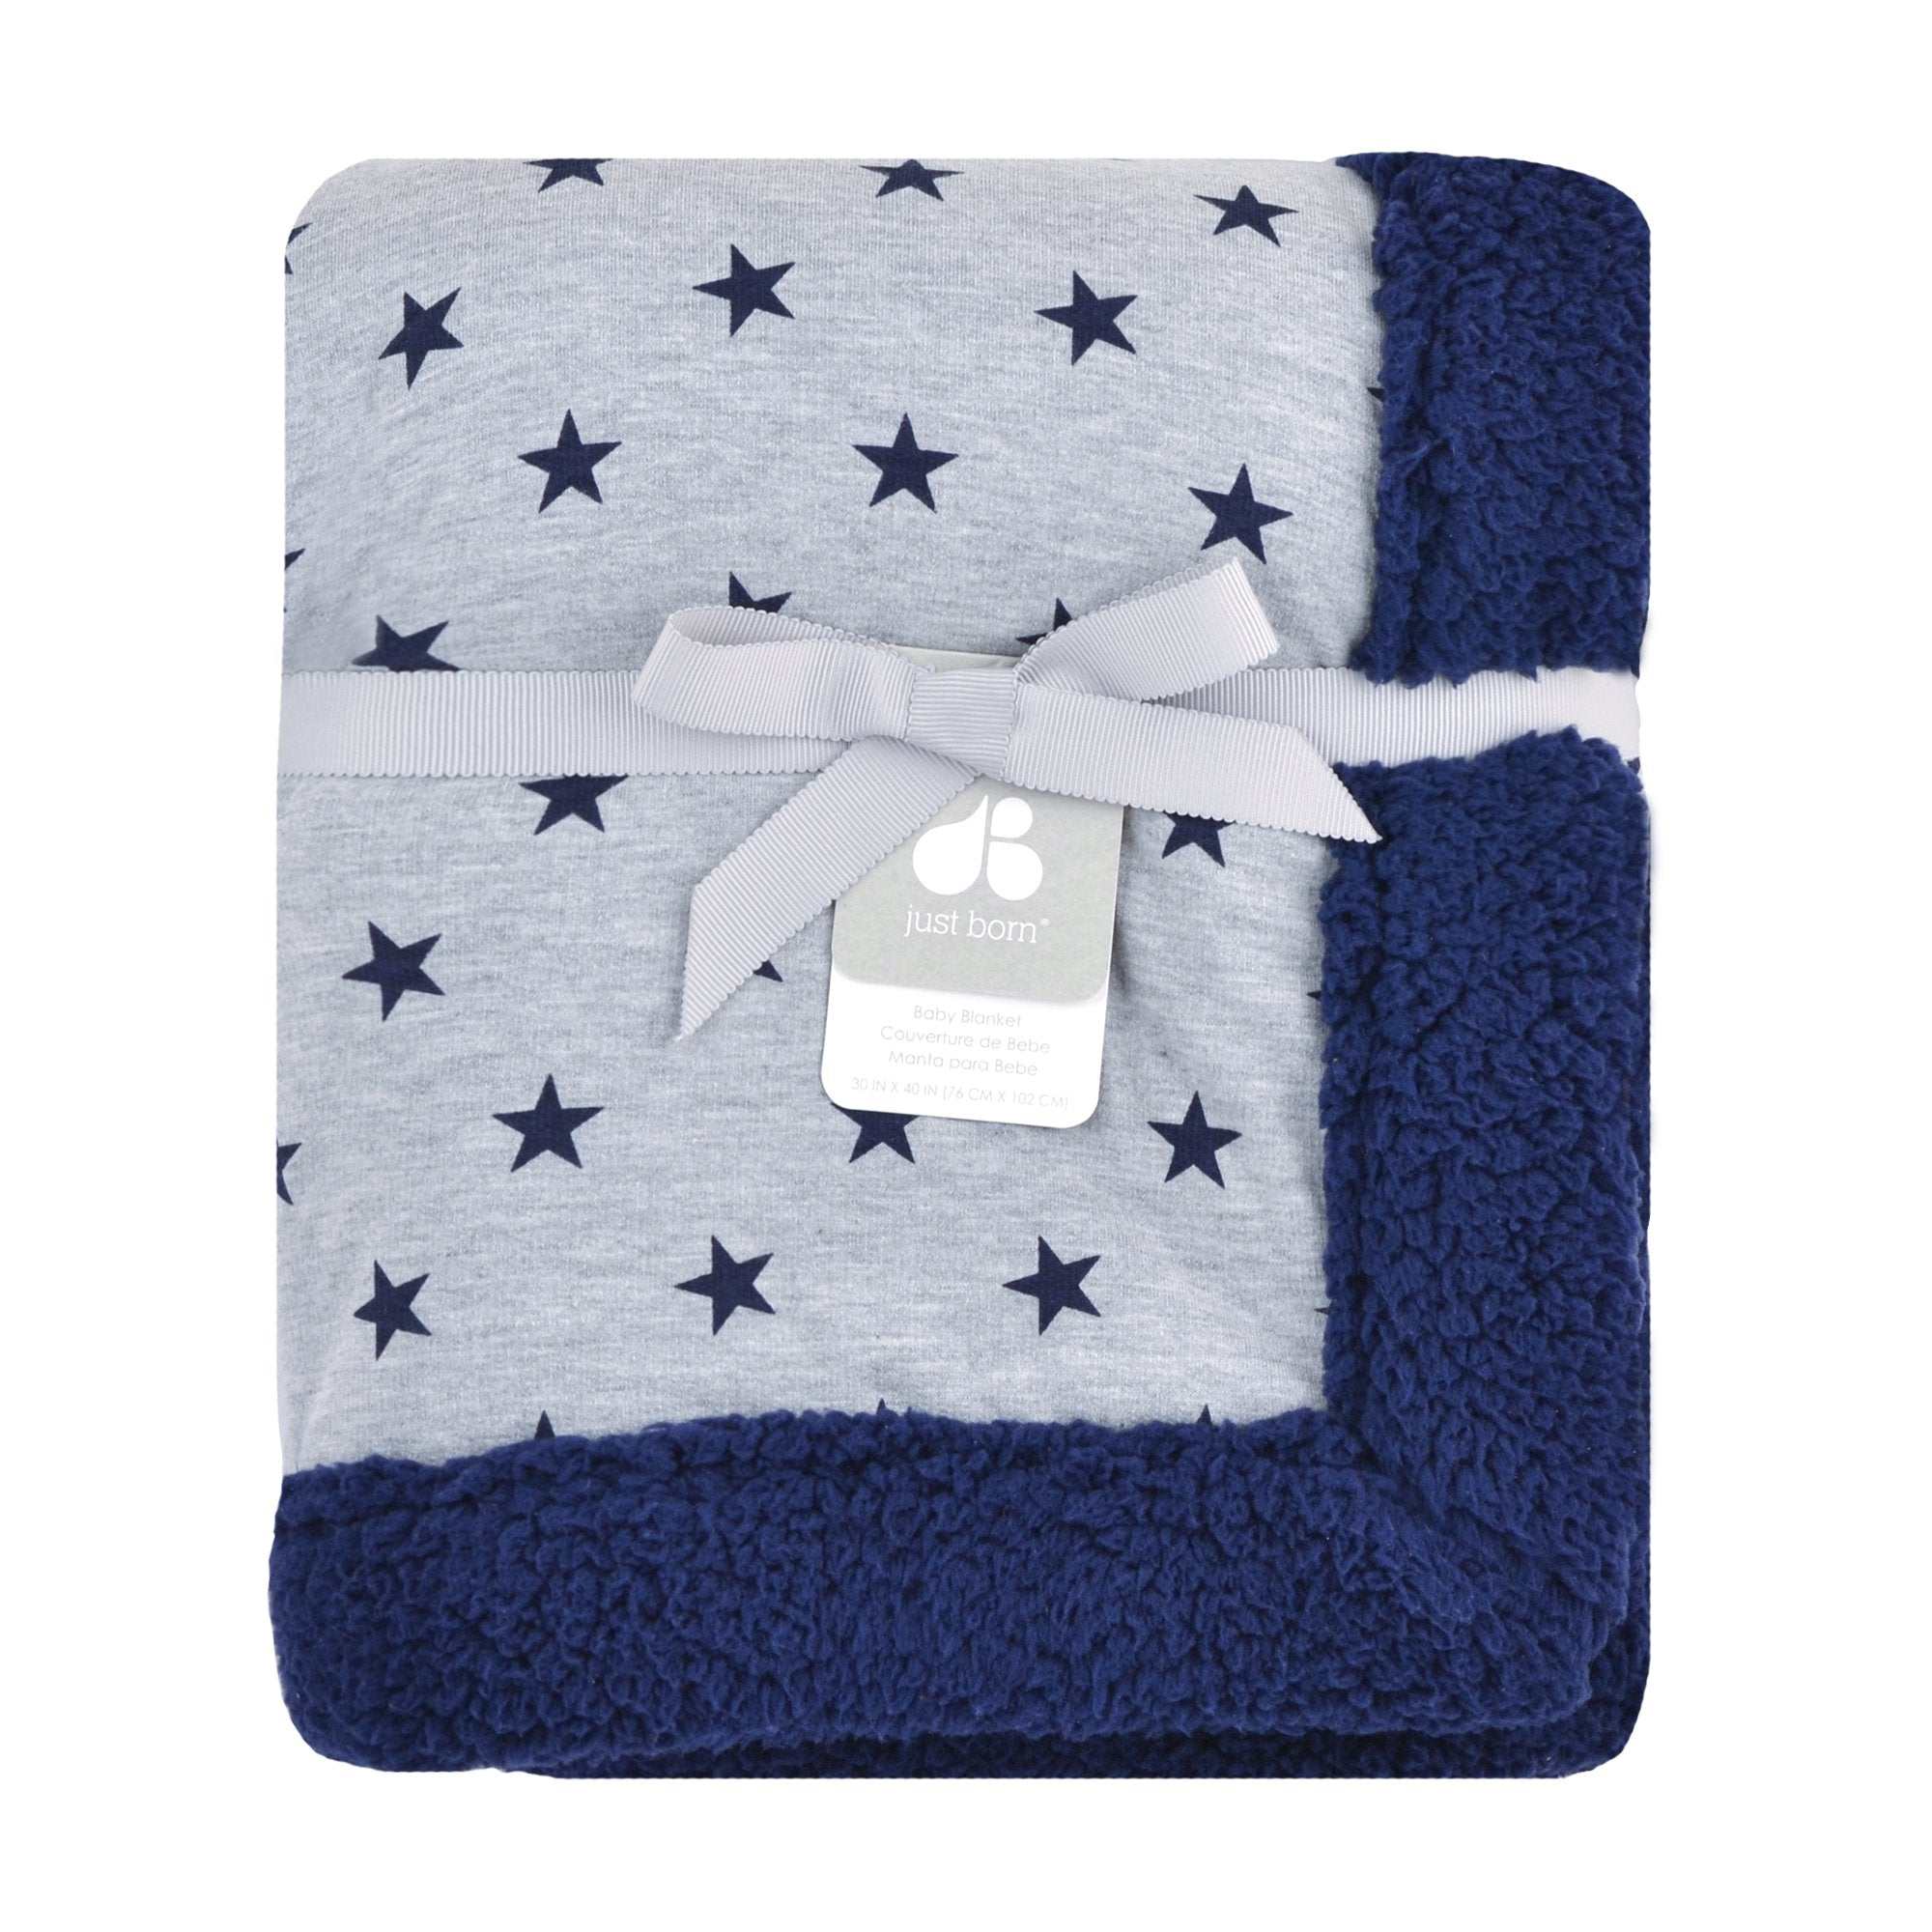 Just Born Plush Blanket in Navy and Heather Grey-Gerber Childrenswear